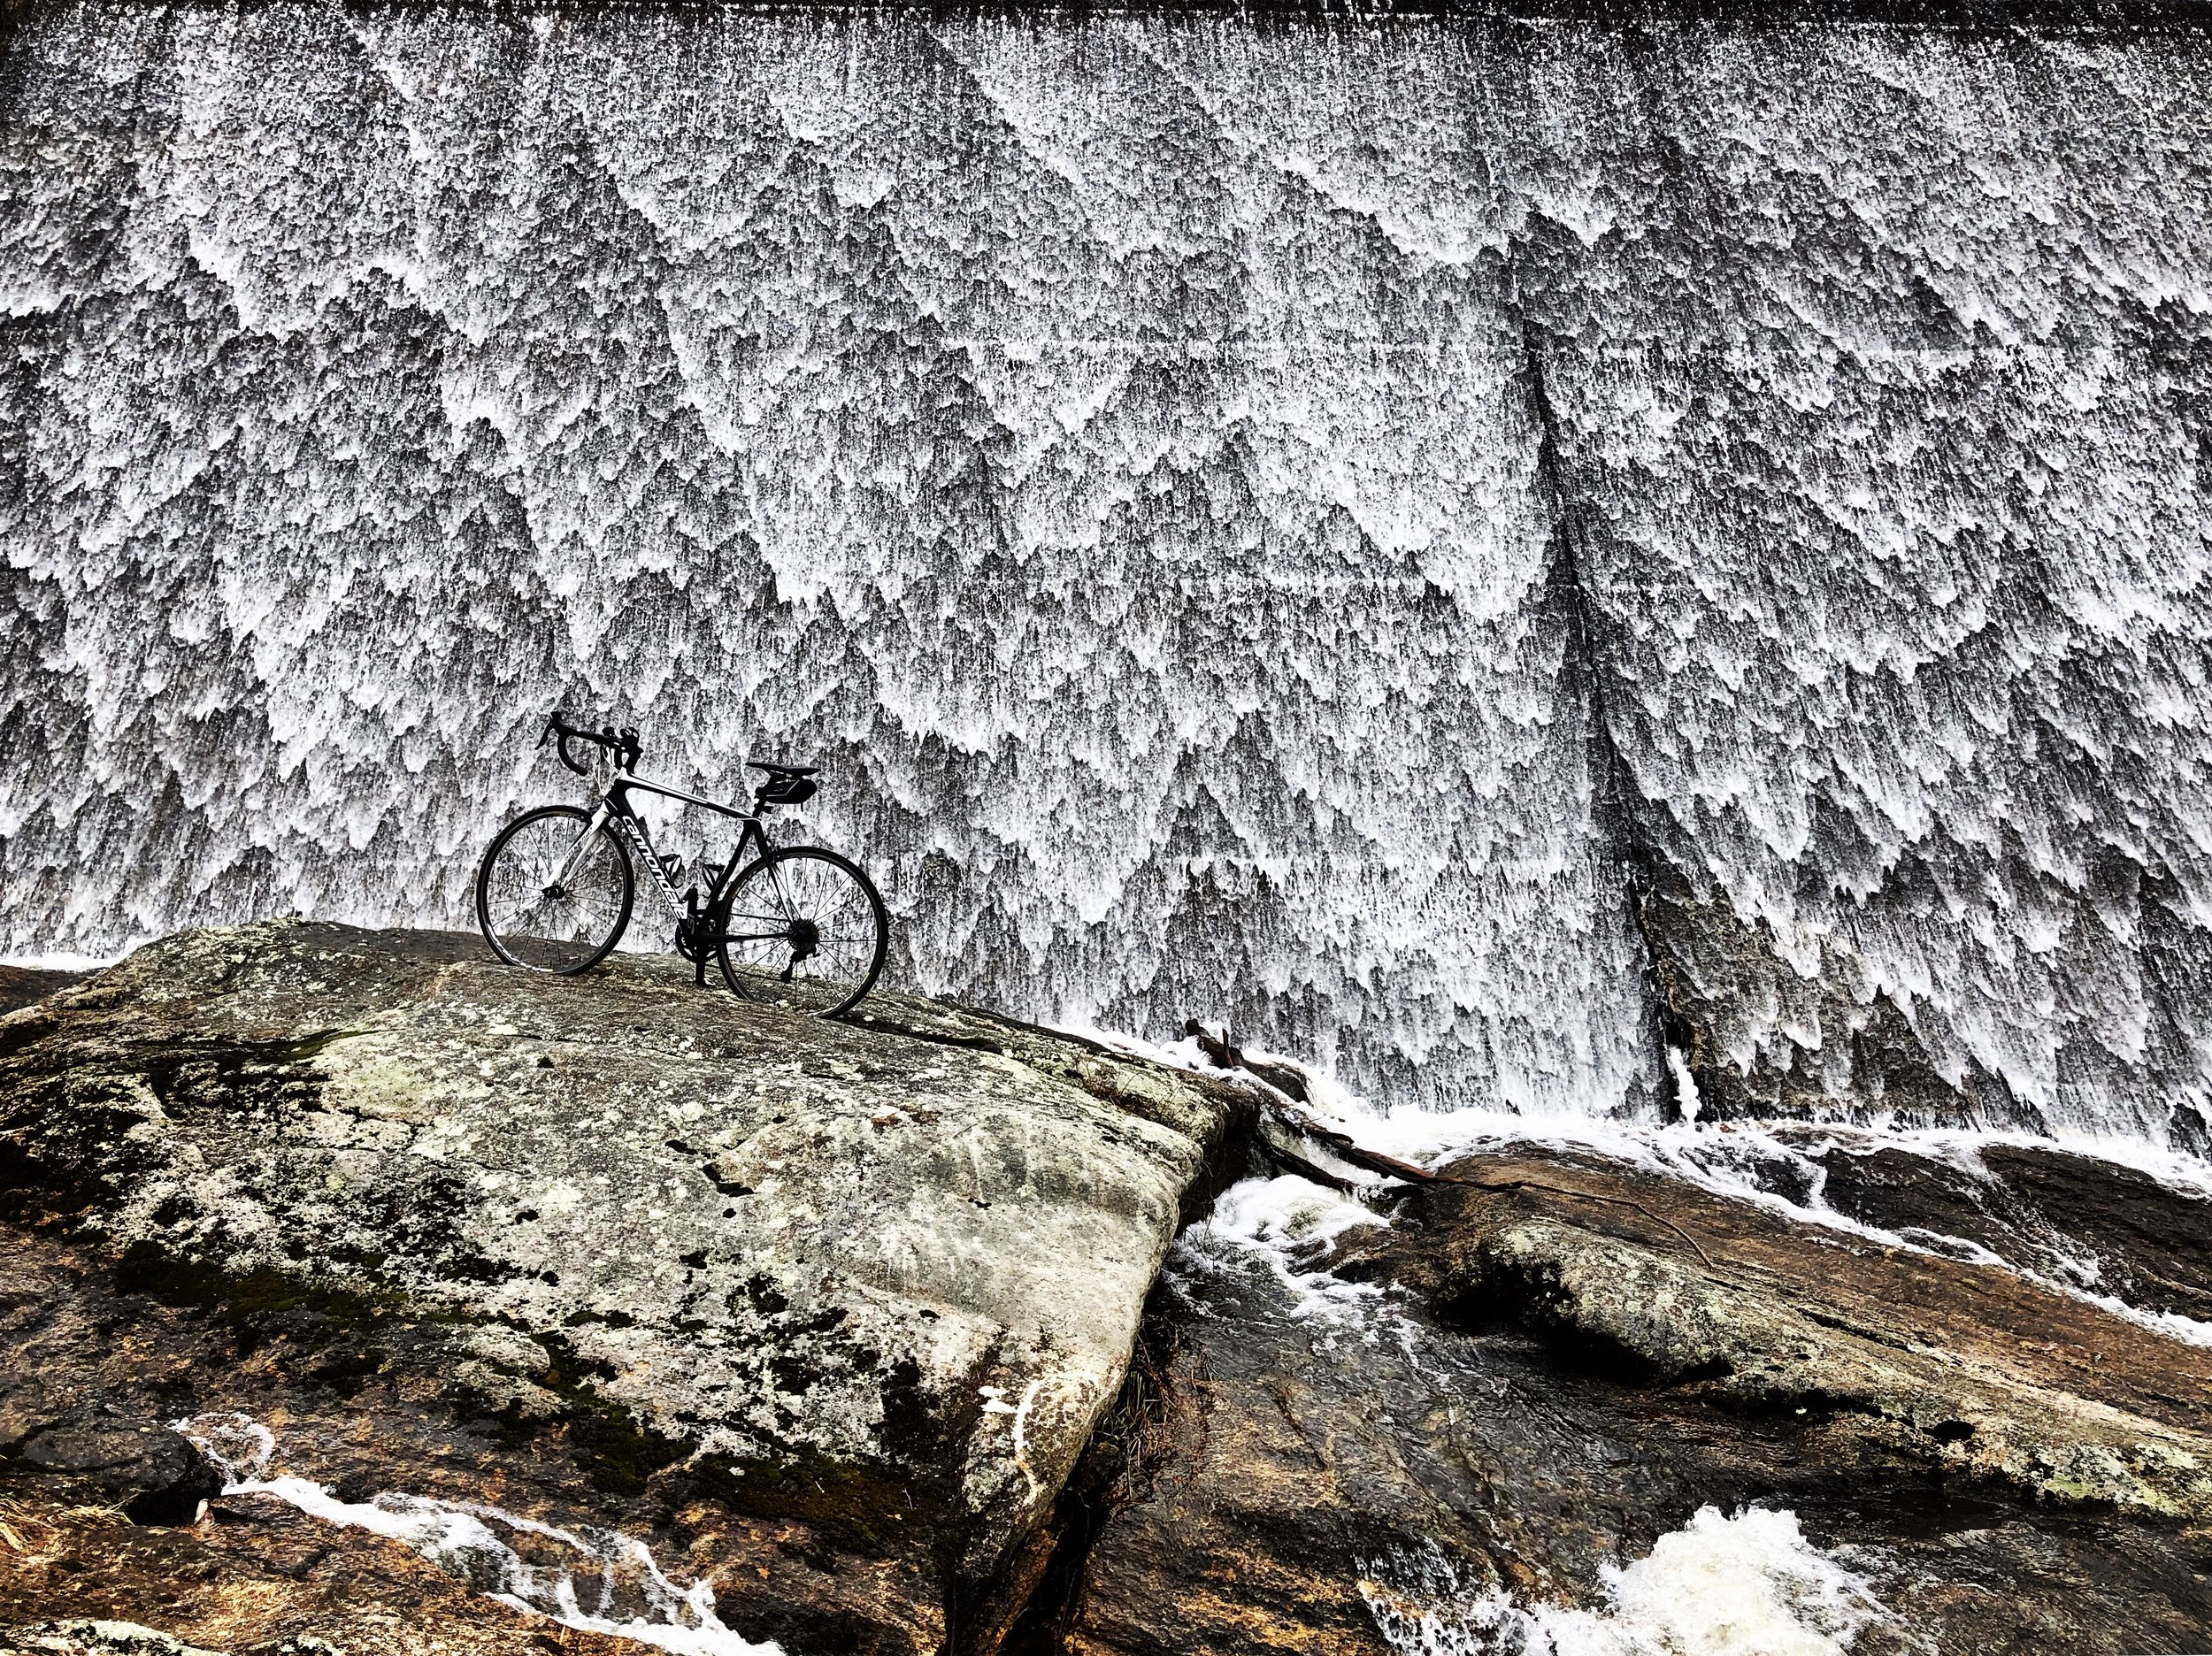 MARTIN GALLAGHER - Photo Contest Winner (Lake Welch Dam)